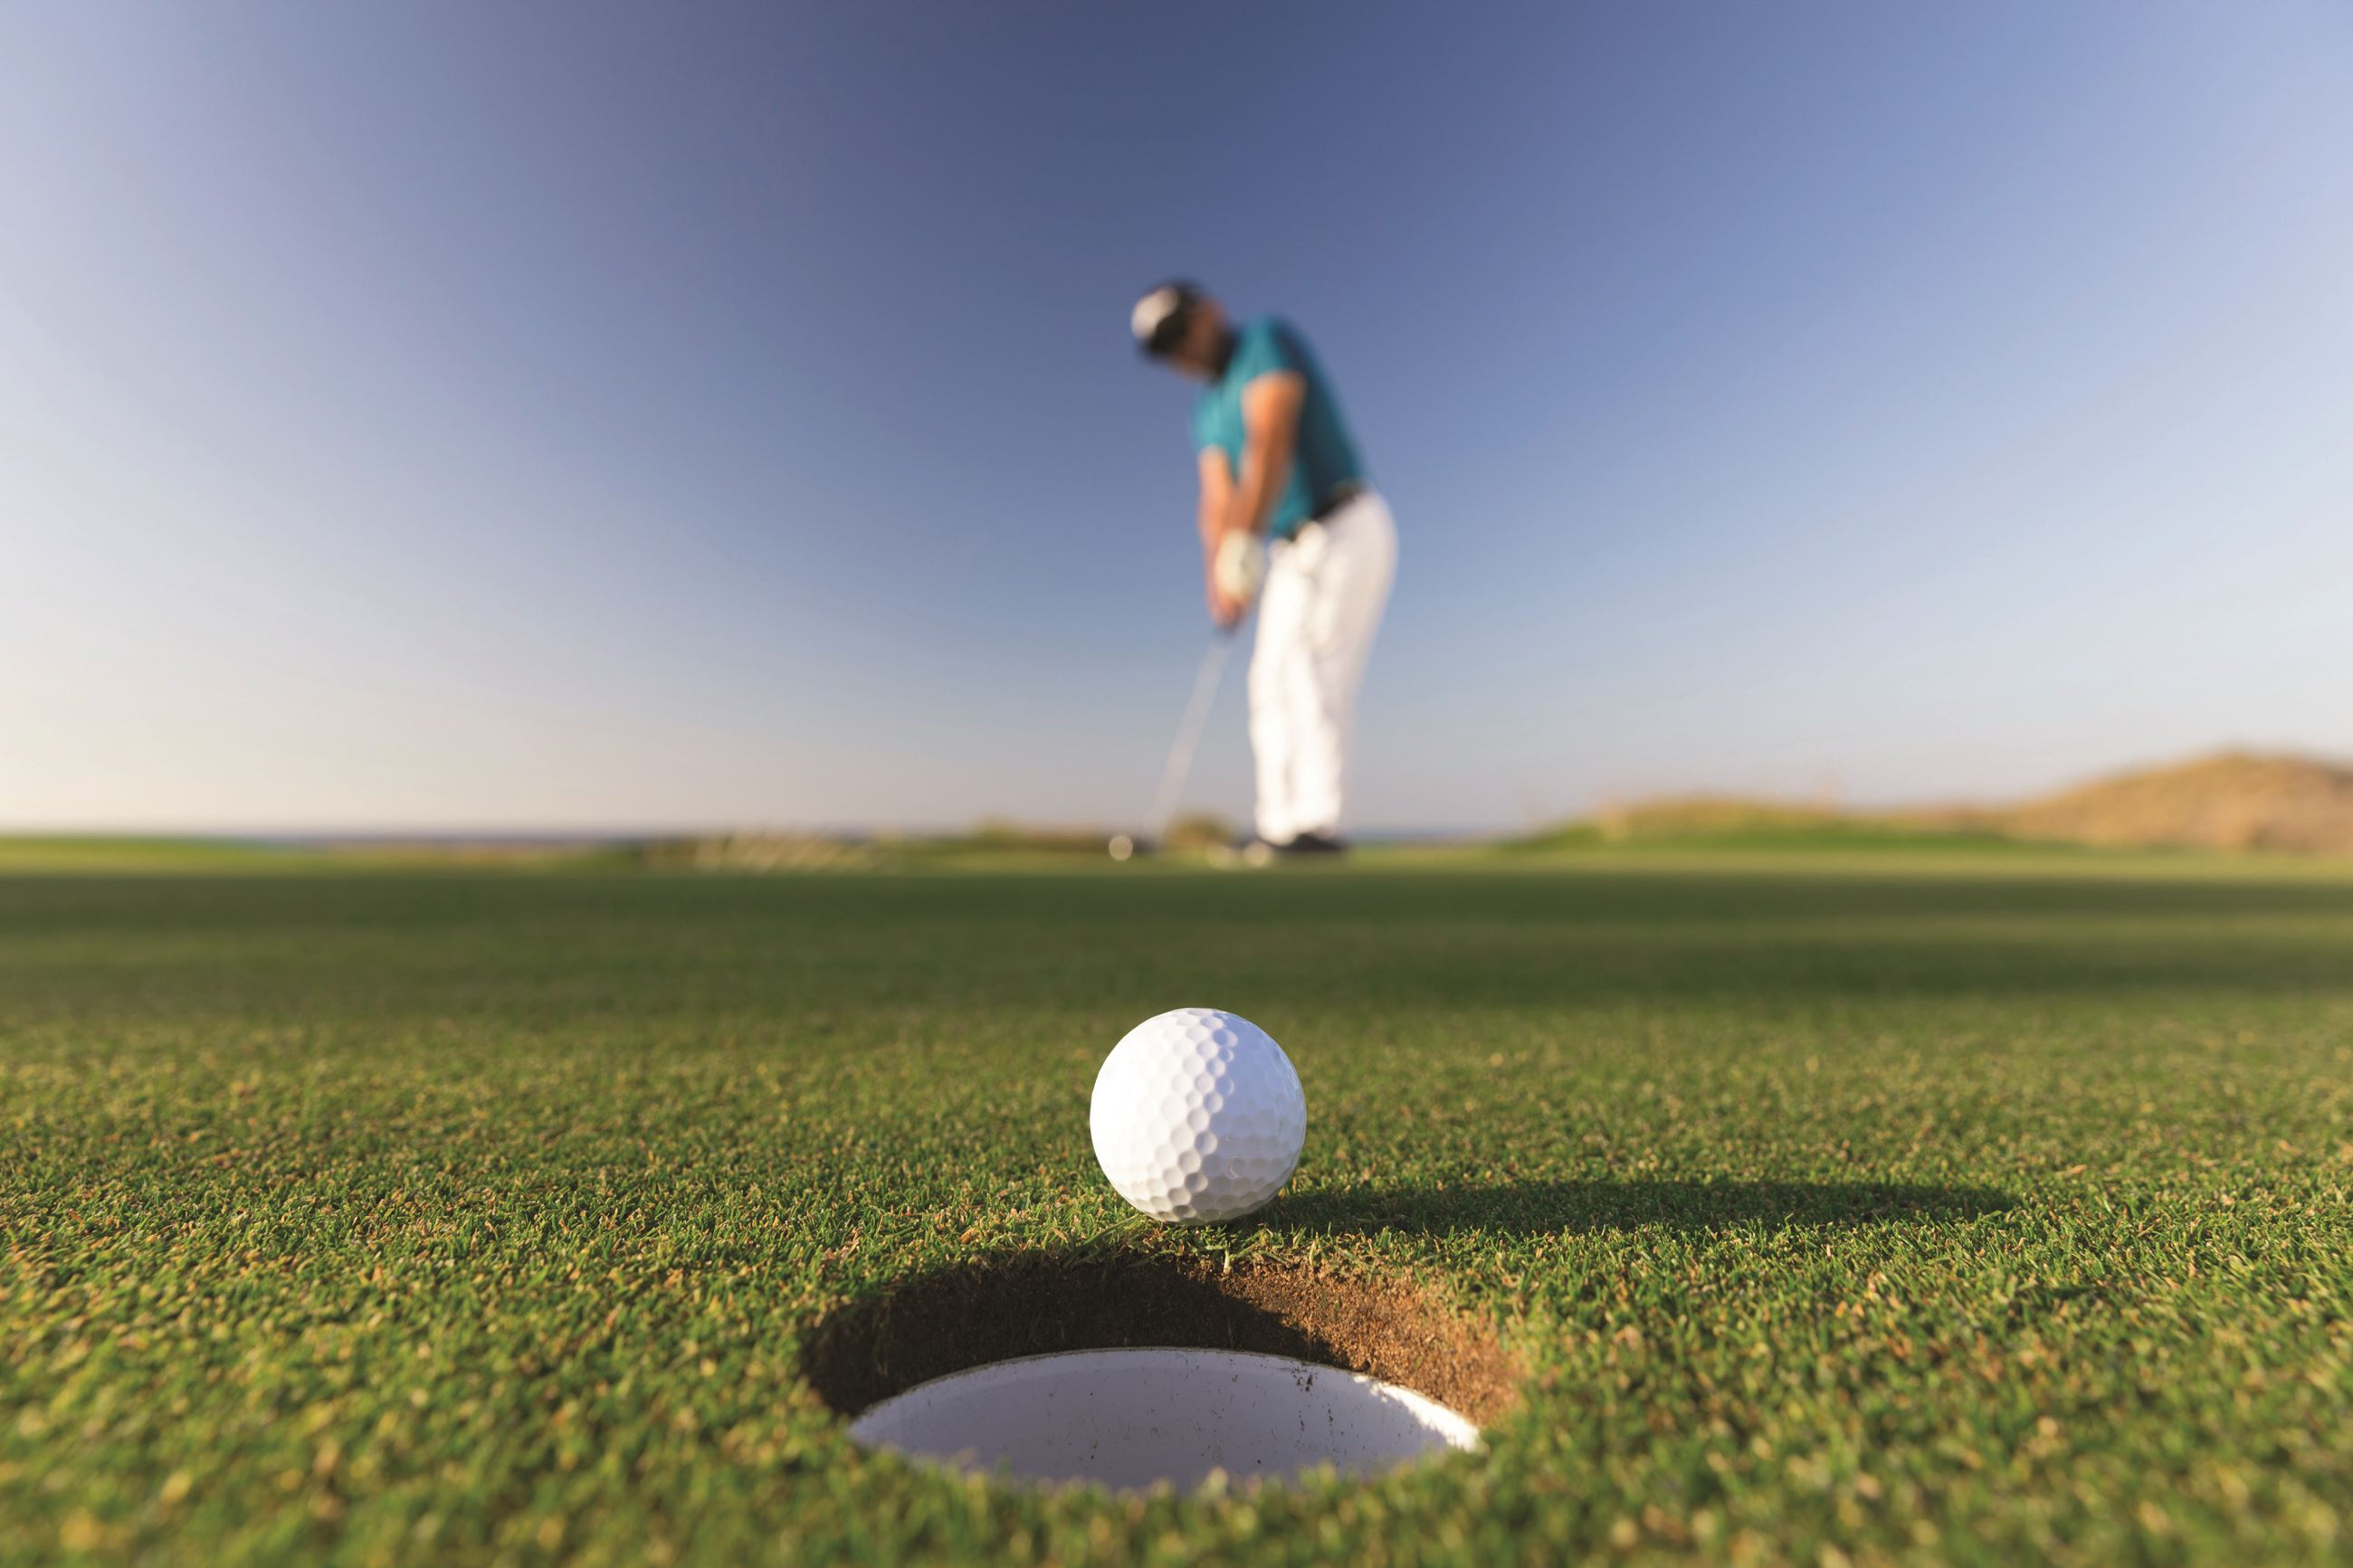 Golfer Making a Putt